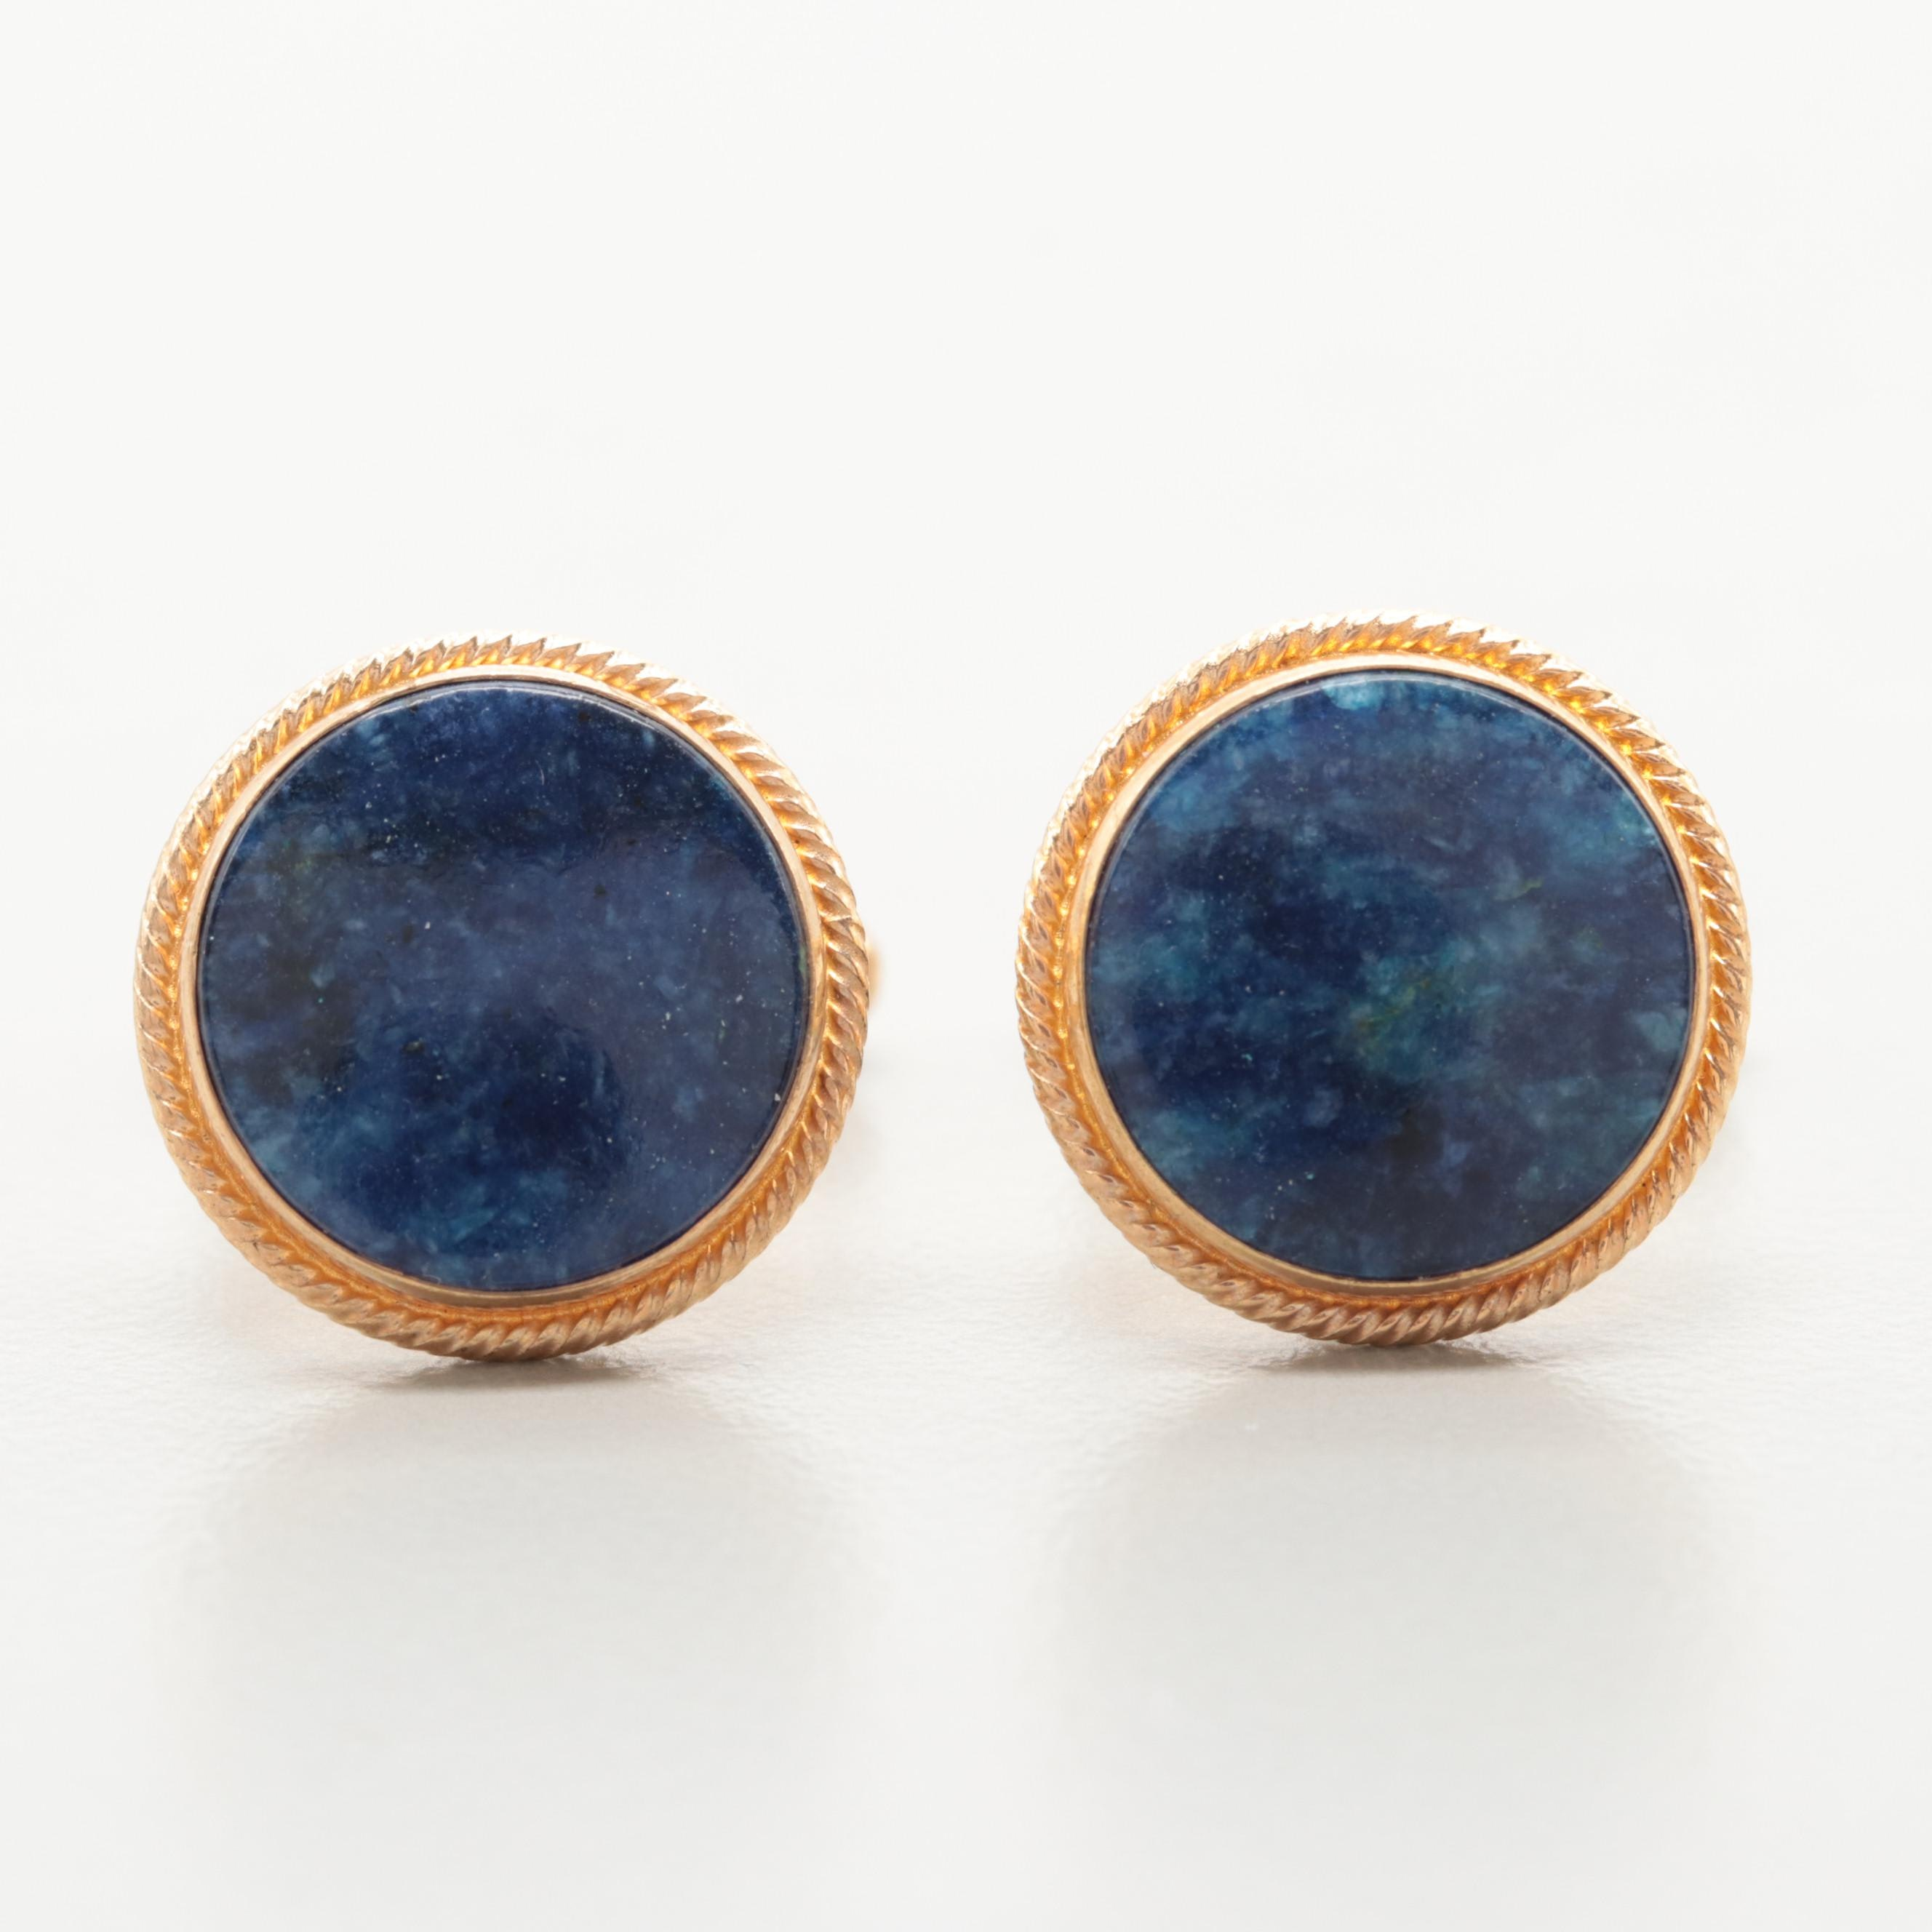 Gold Tone Sodalite Cuff Links